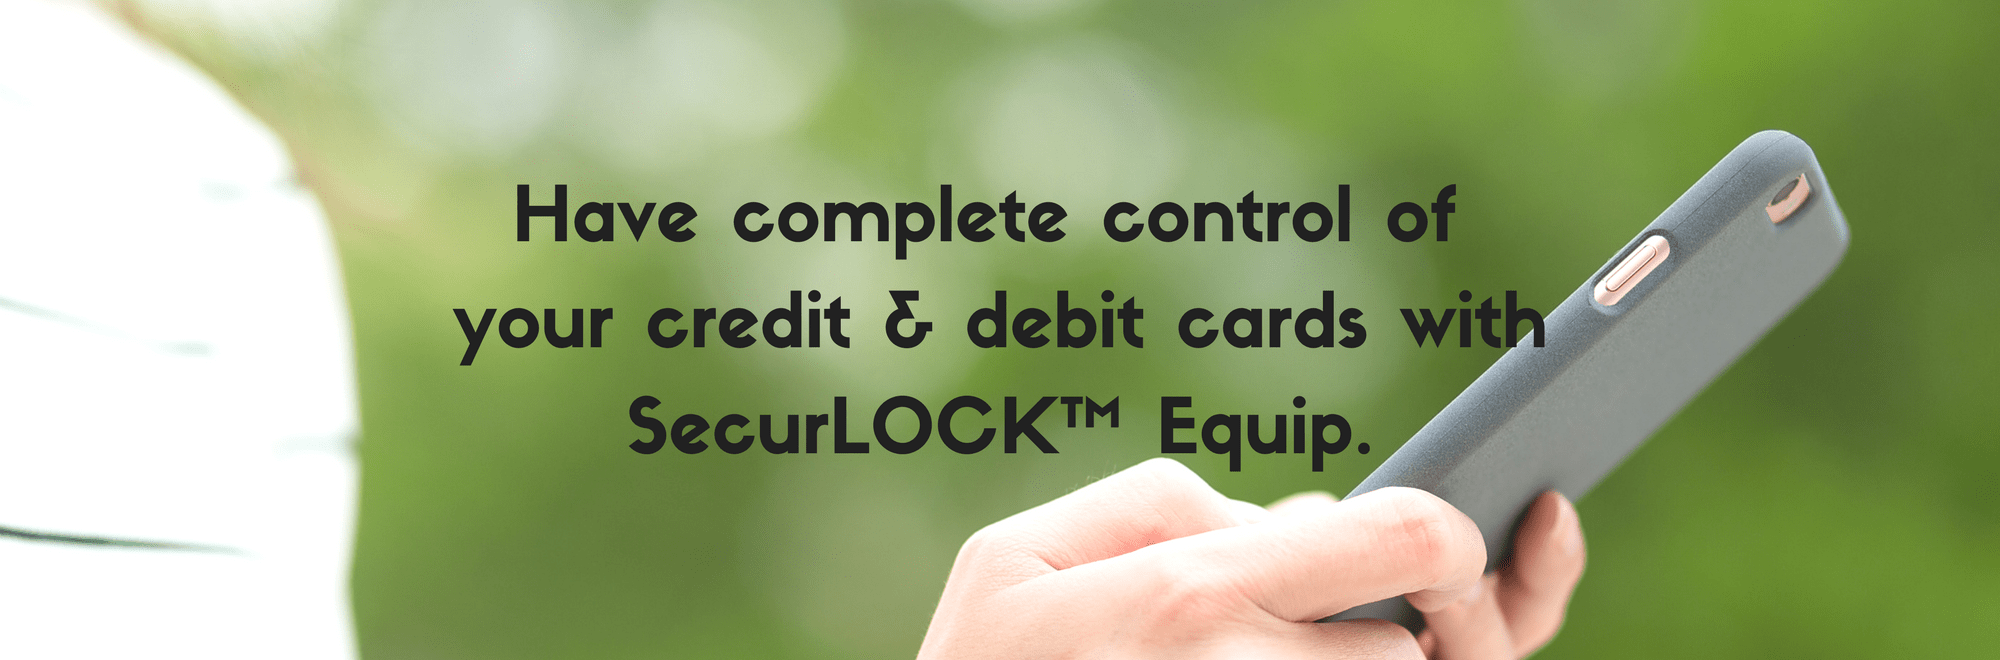 SecurLOCK Equip Now Available at TBACU